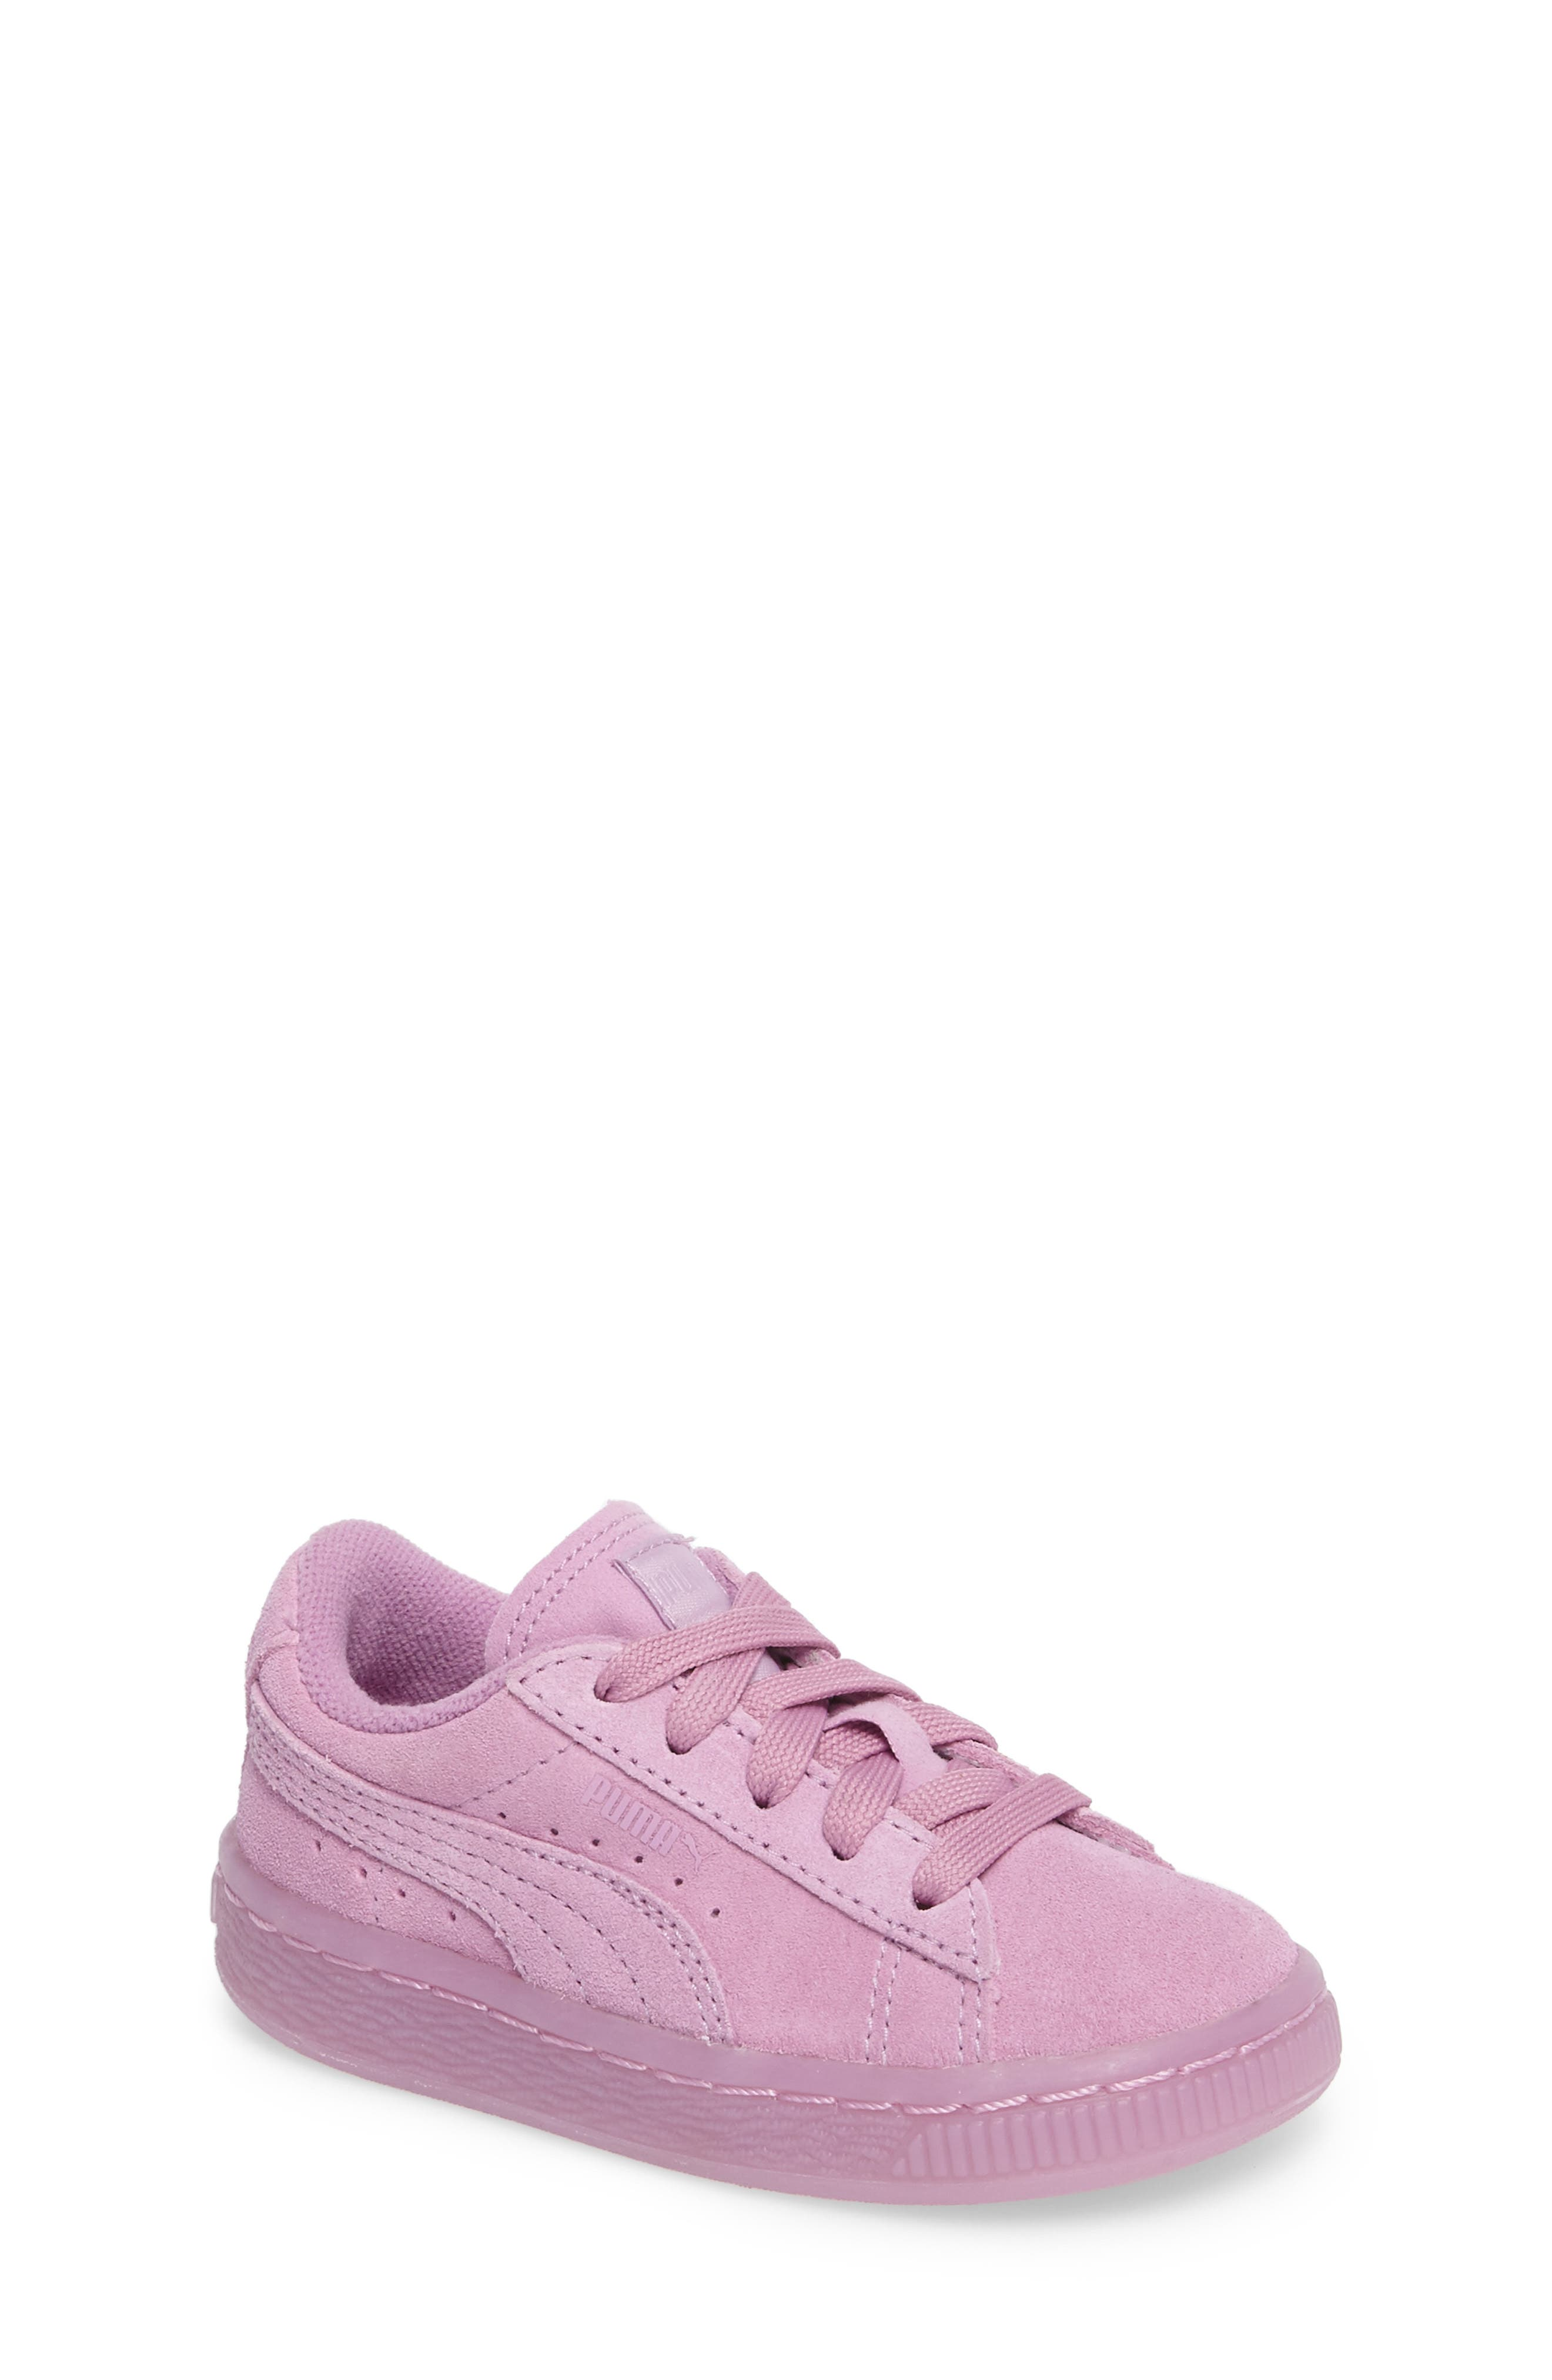 Suede Iced Sneaker,                             Main thumbnail 1, color,                             500